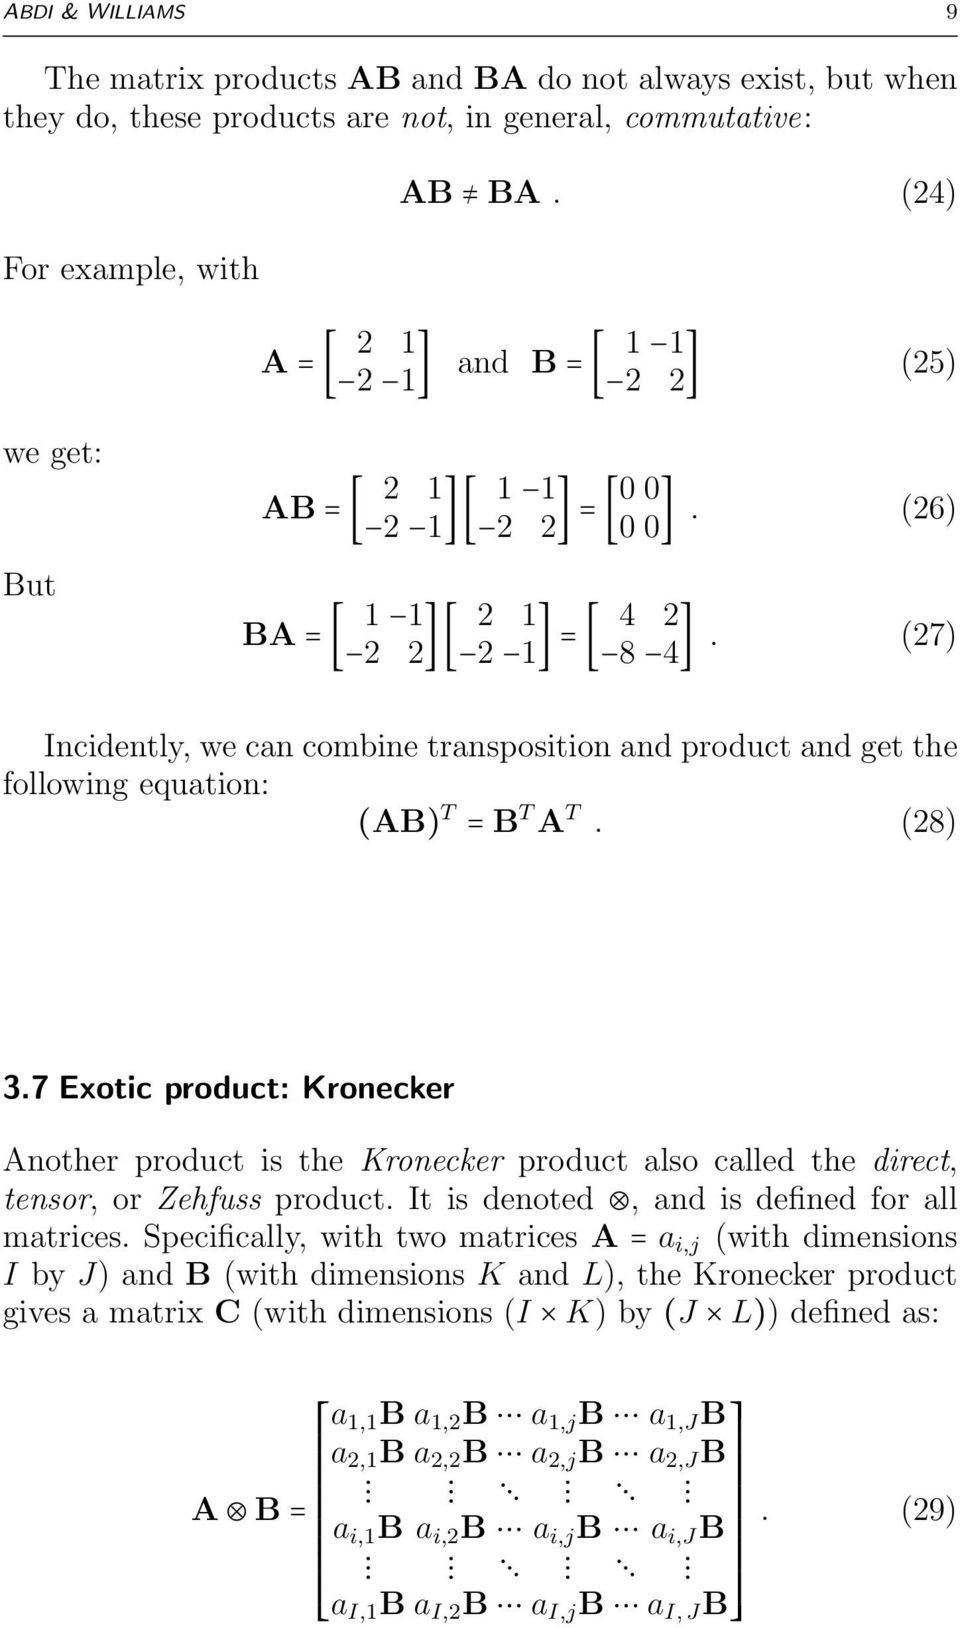 (8) 3.7 Exotic product: Kronecker Another product is the Kronecker product also called the direct, tensor, or Zehfuss product. It is denoted, and is defined for all matrices.